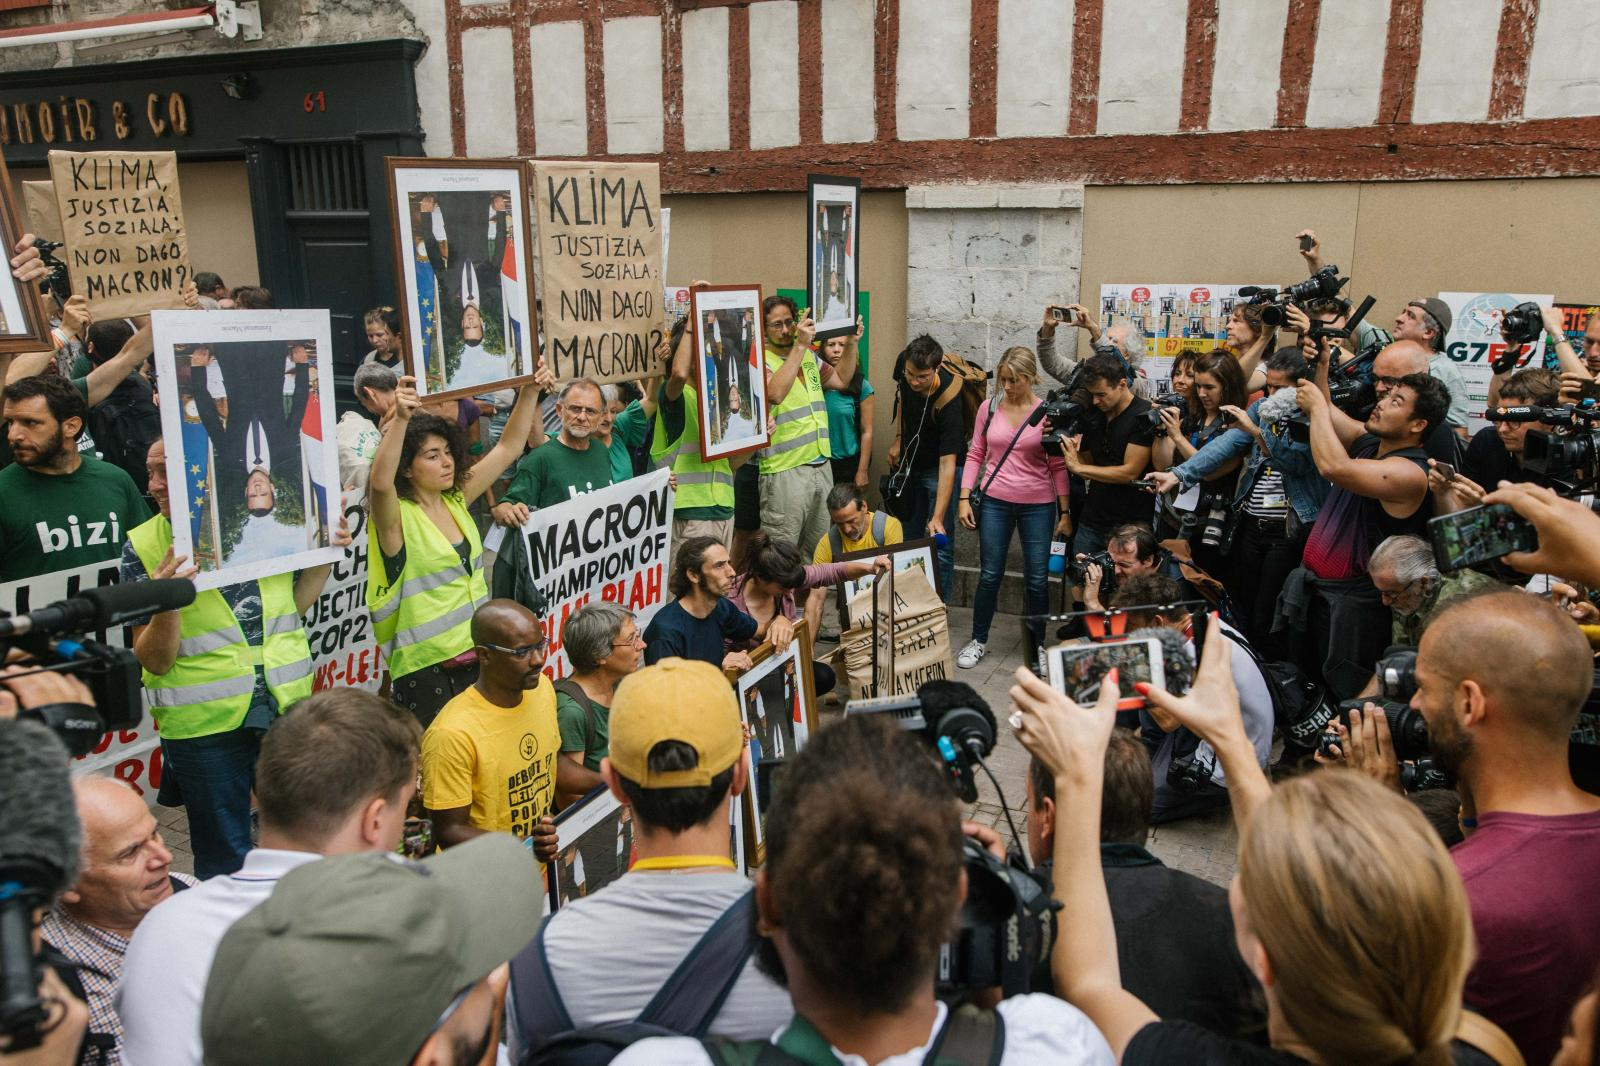 2019-08-25 - Action of civil disobedience by ANV COP21 in Bayonne, revealing stolen Macron propaganda protraits.